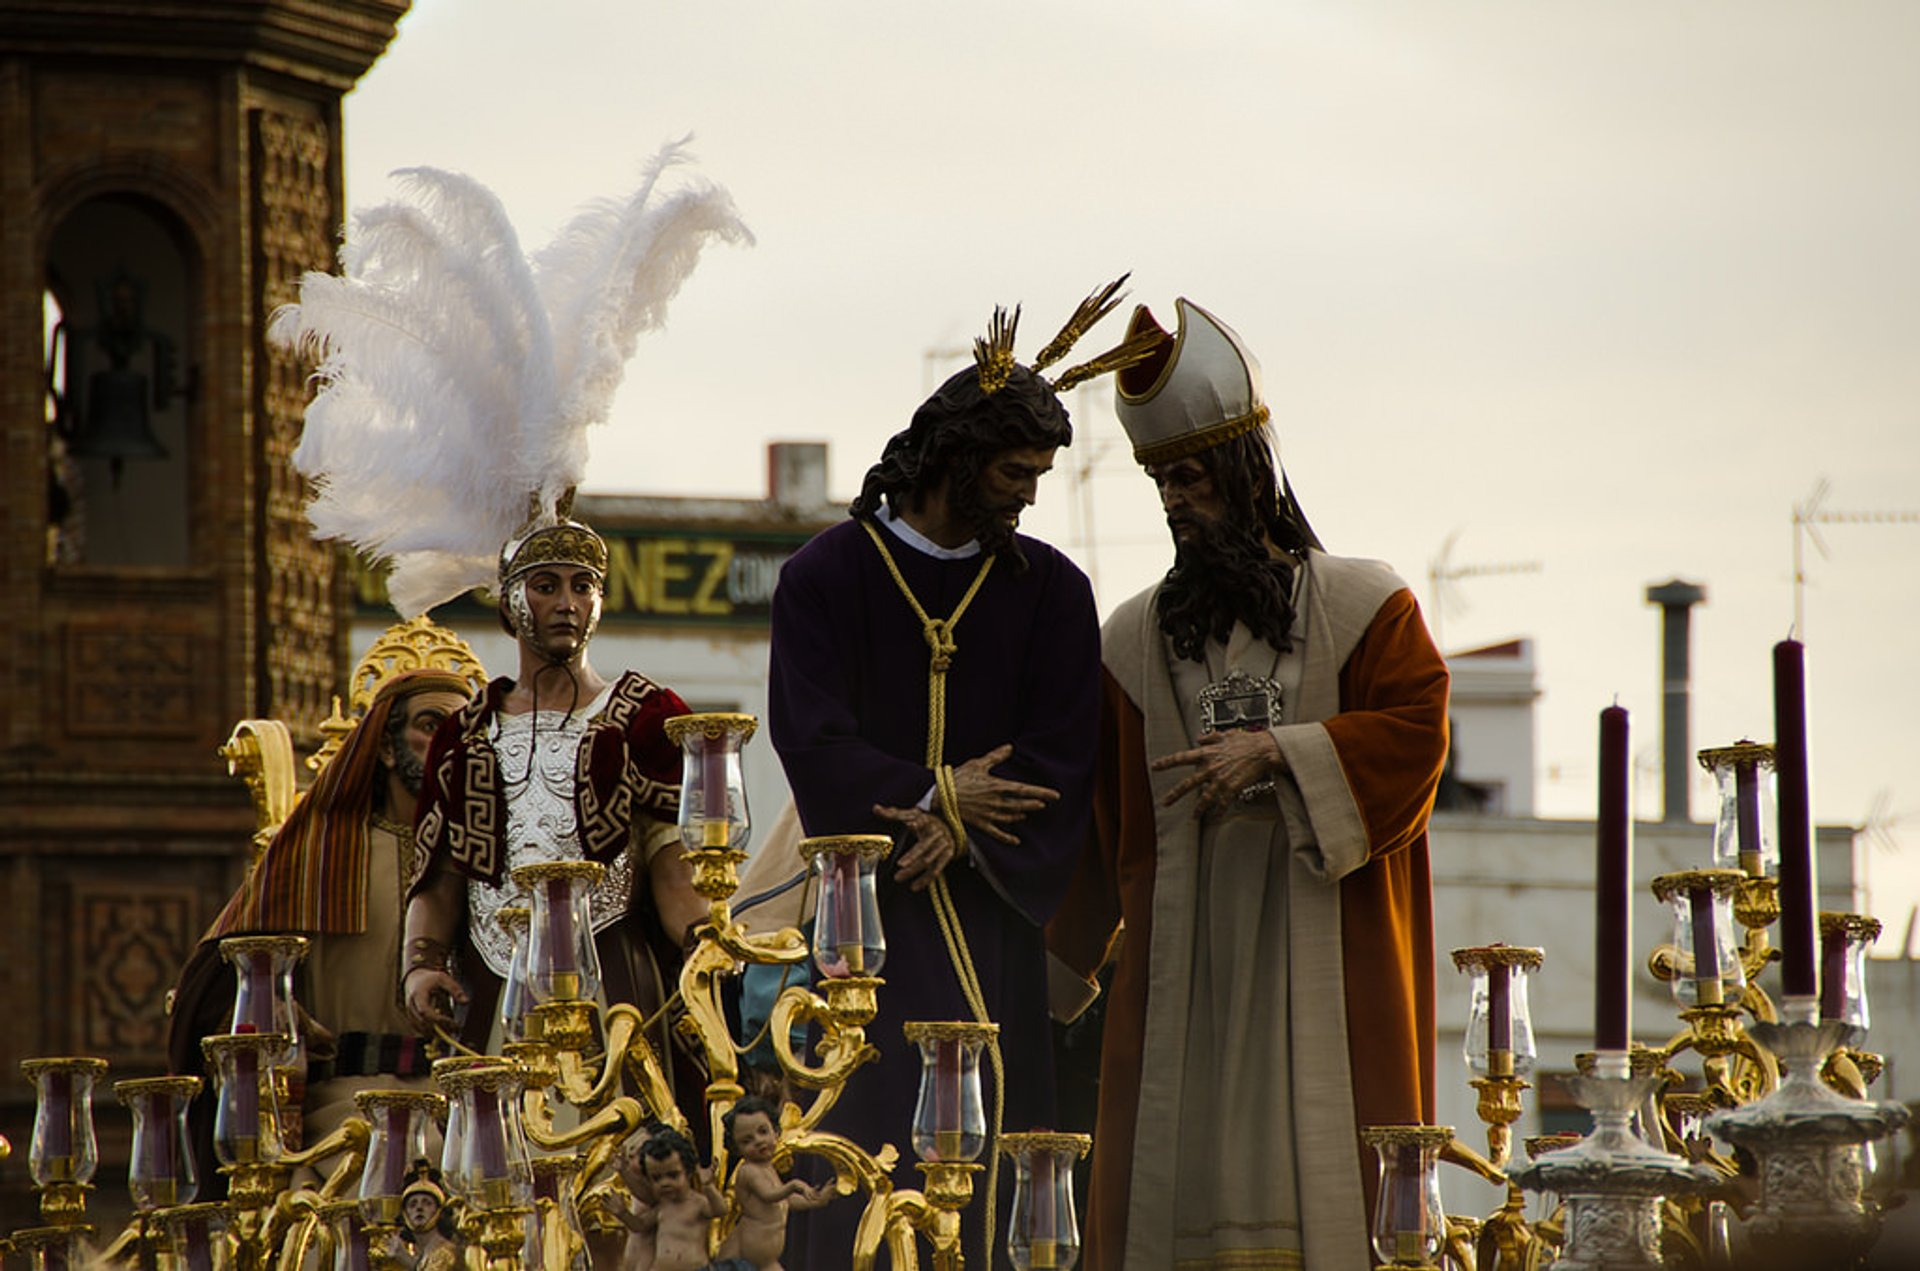 Semana Santa (Holy Week) & Easter in Seville 2019 - Best Time